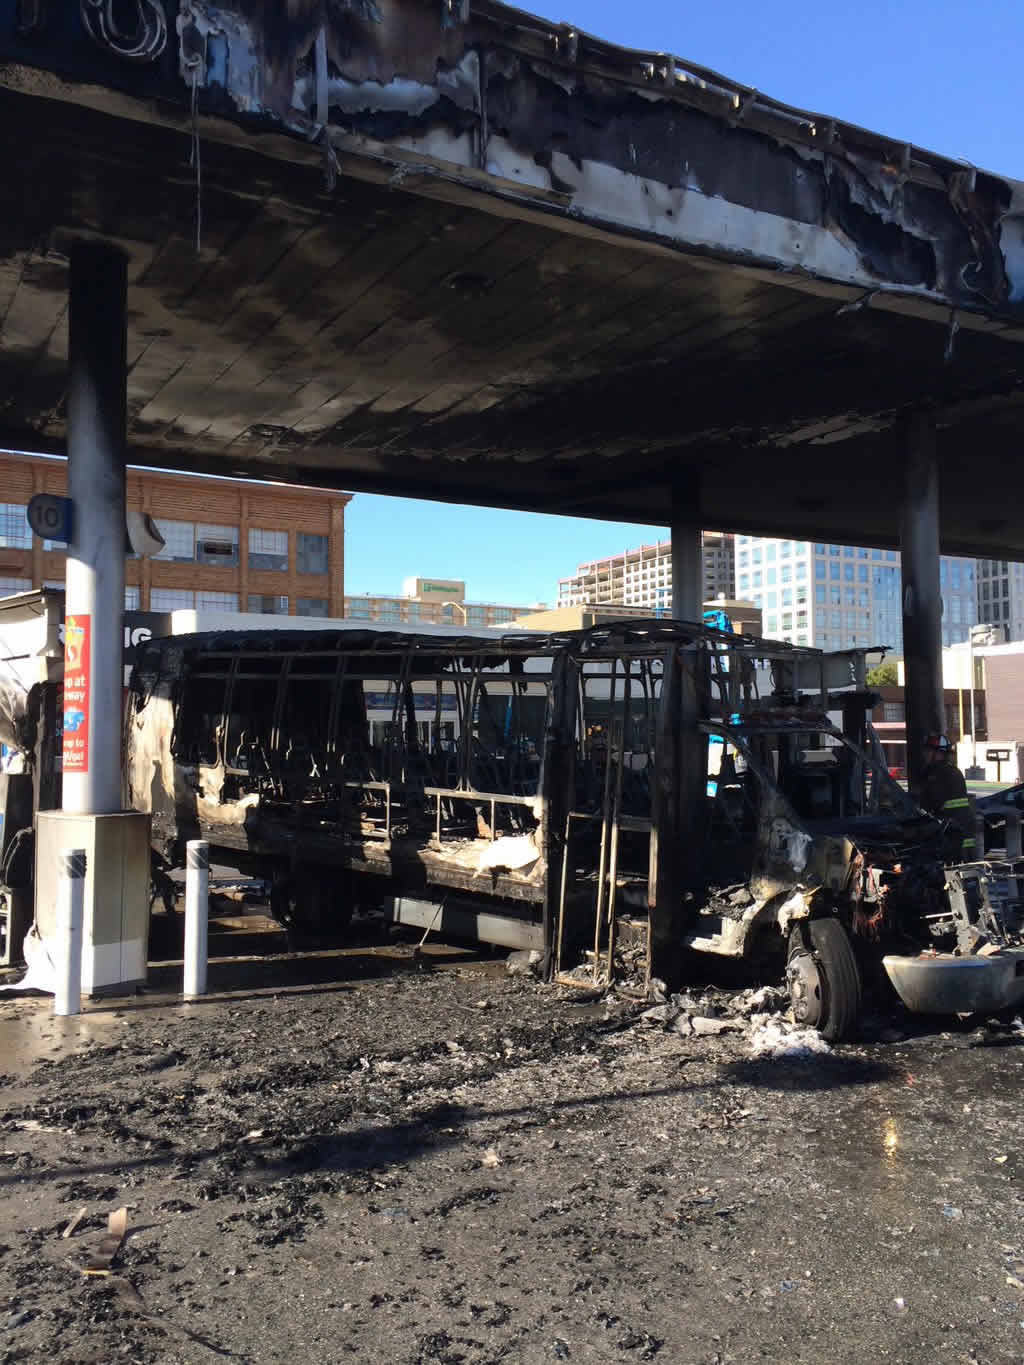 "<div class=""meta image-caption""><div class=""origin-logo origin-image none""><span>none</span></div><span class=""caption-text"">A bus that caught fire at a gas station in San Francisco on Monday, February 29, 2016. (@sffdpio/Twitter)</span></div>"